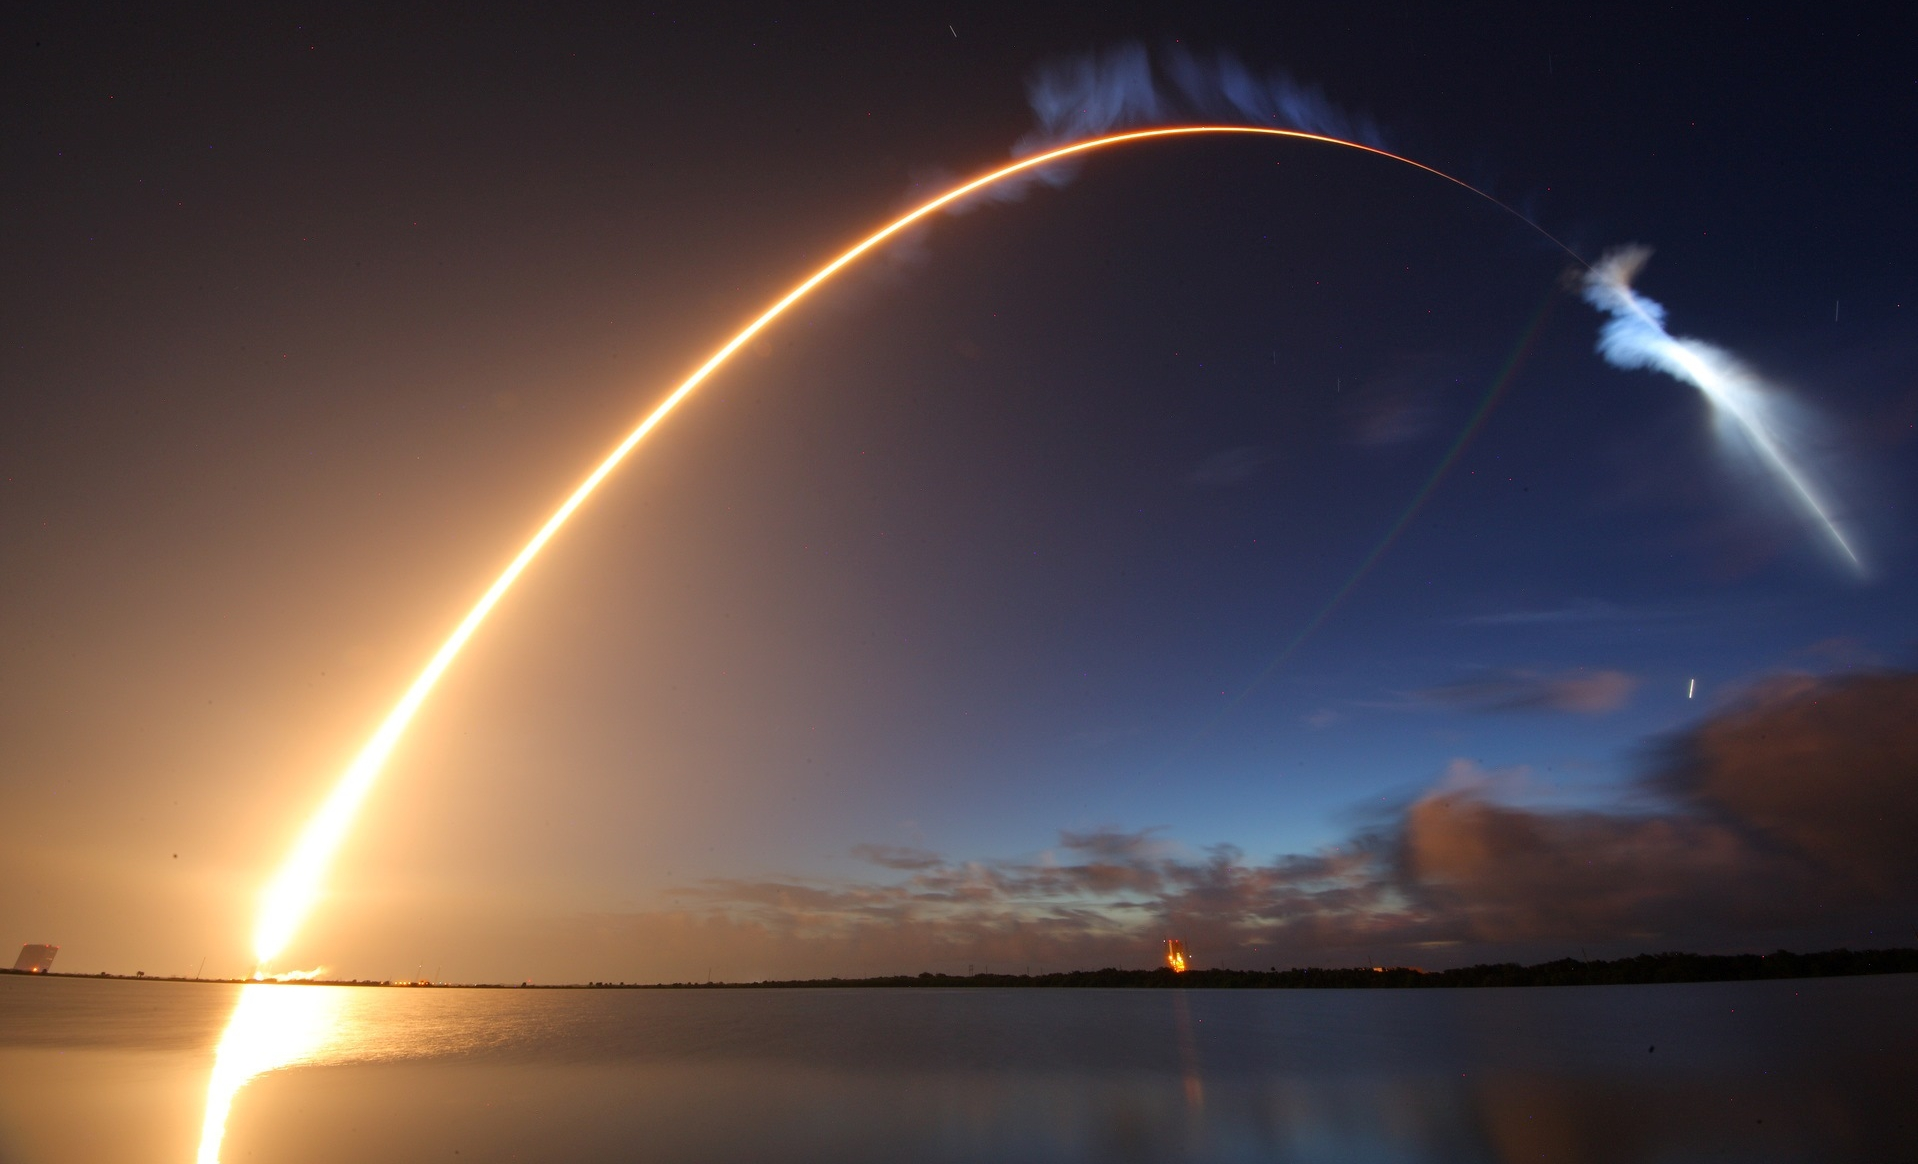 You don't need to be a rocket scientist to re-launch a book.